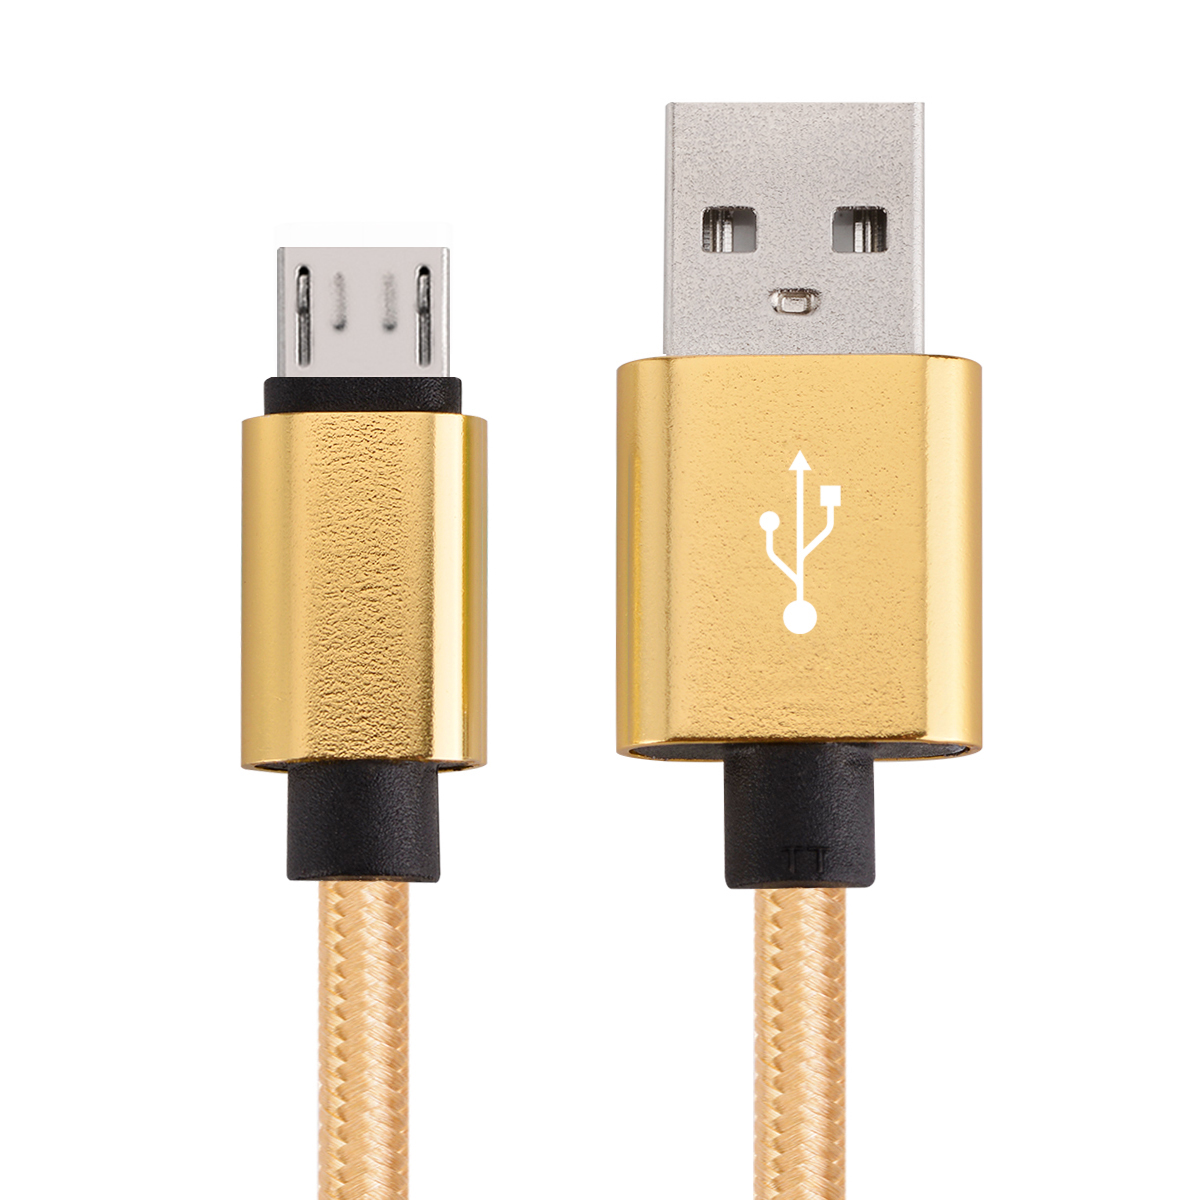 Micro USB Cable Charger for Android, FREEDOMTECH 3ft USB to Micro USB Cable Charger Cord High Speed USB2.0 Sync and Charging Cable for Samsung, HTC, Motorola, Nokia, Kindle, MP3, Tablet and more